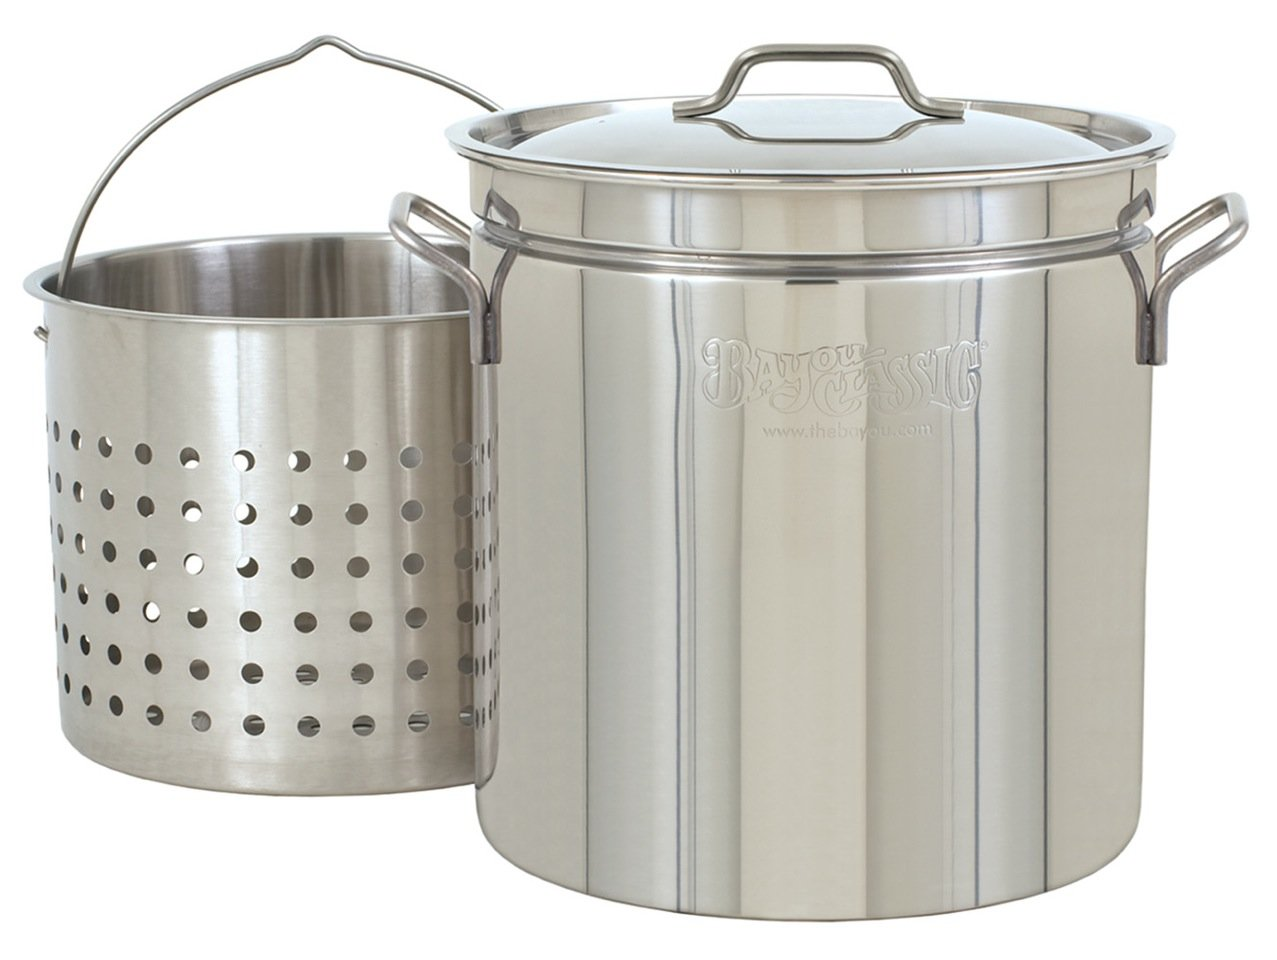 Bayou Classic 24-Quart All Purpose Stainless Steel Stockpot with Steam and Boil Basket